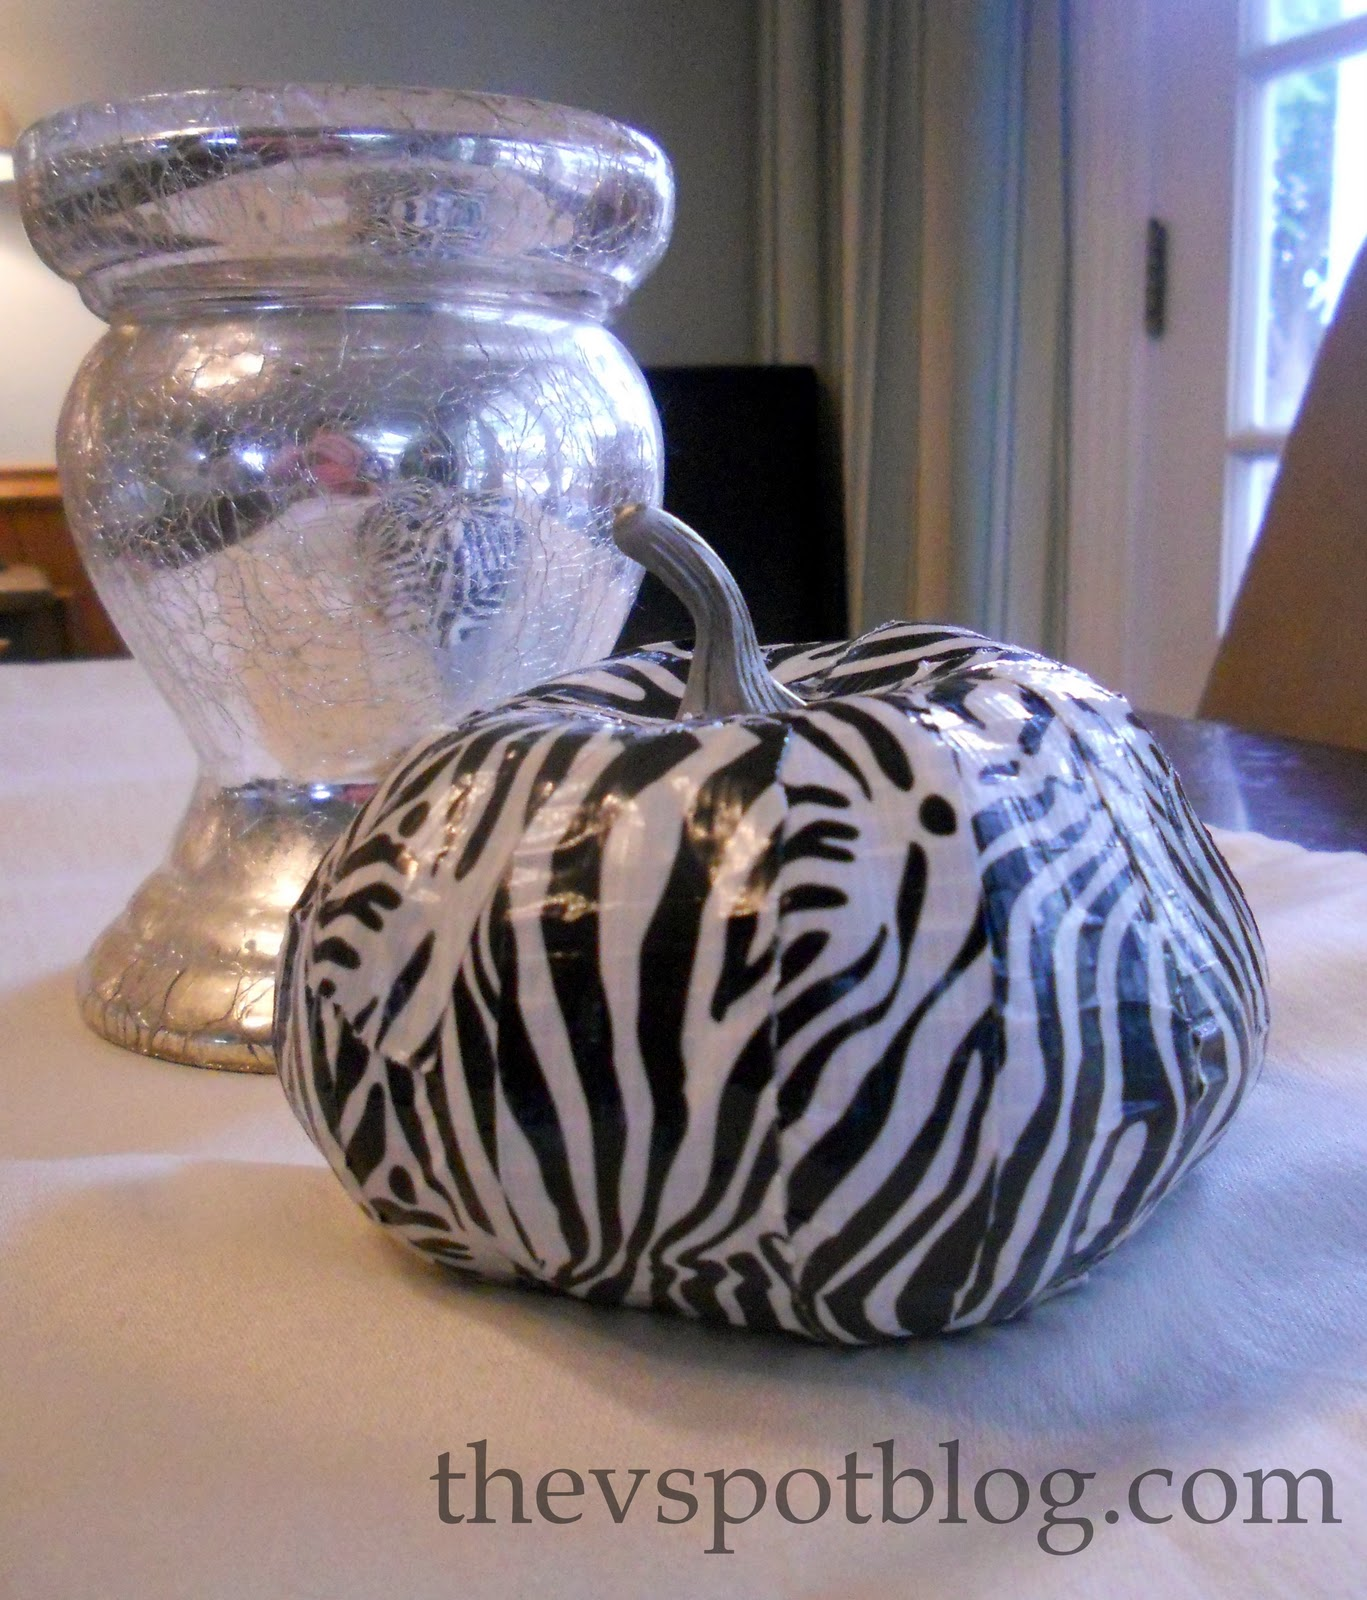 A Zebra Striped Pumpkin More Fun Pumpkin Crafts The V Spot - 22 insanely useful things can duct tape